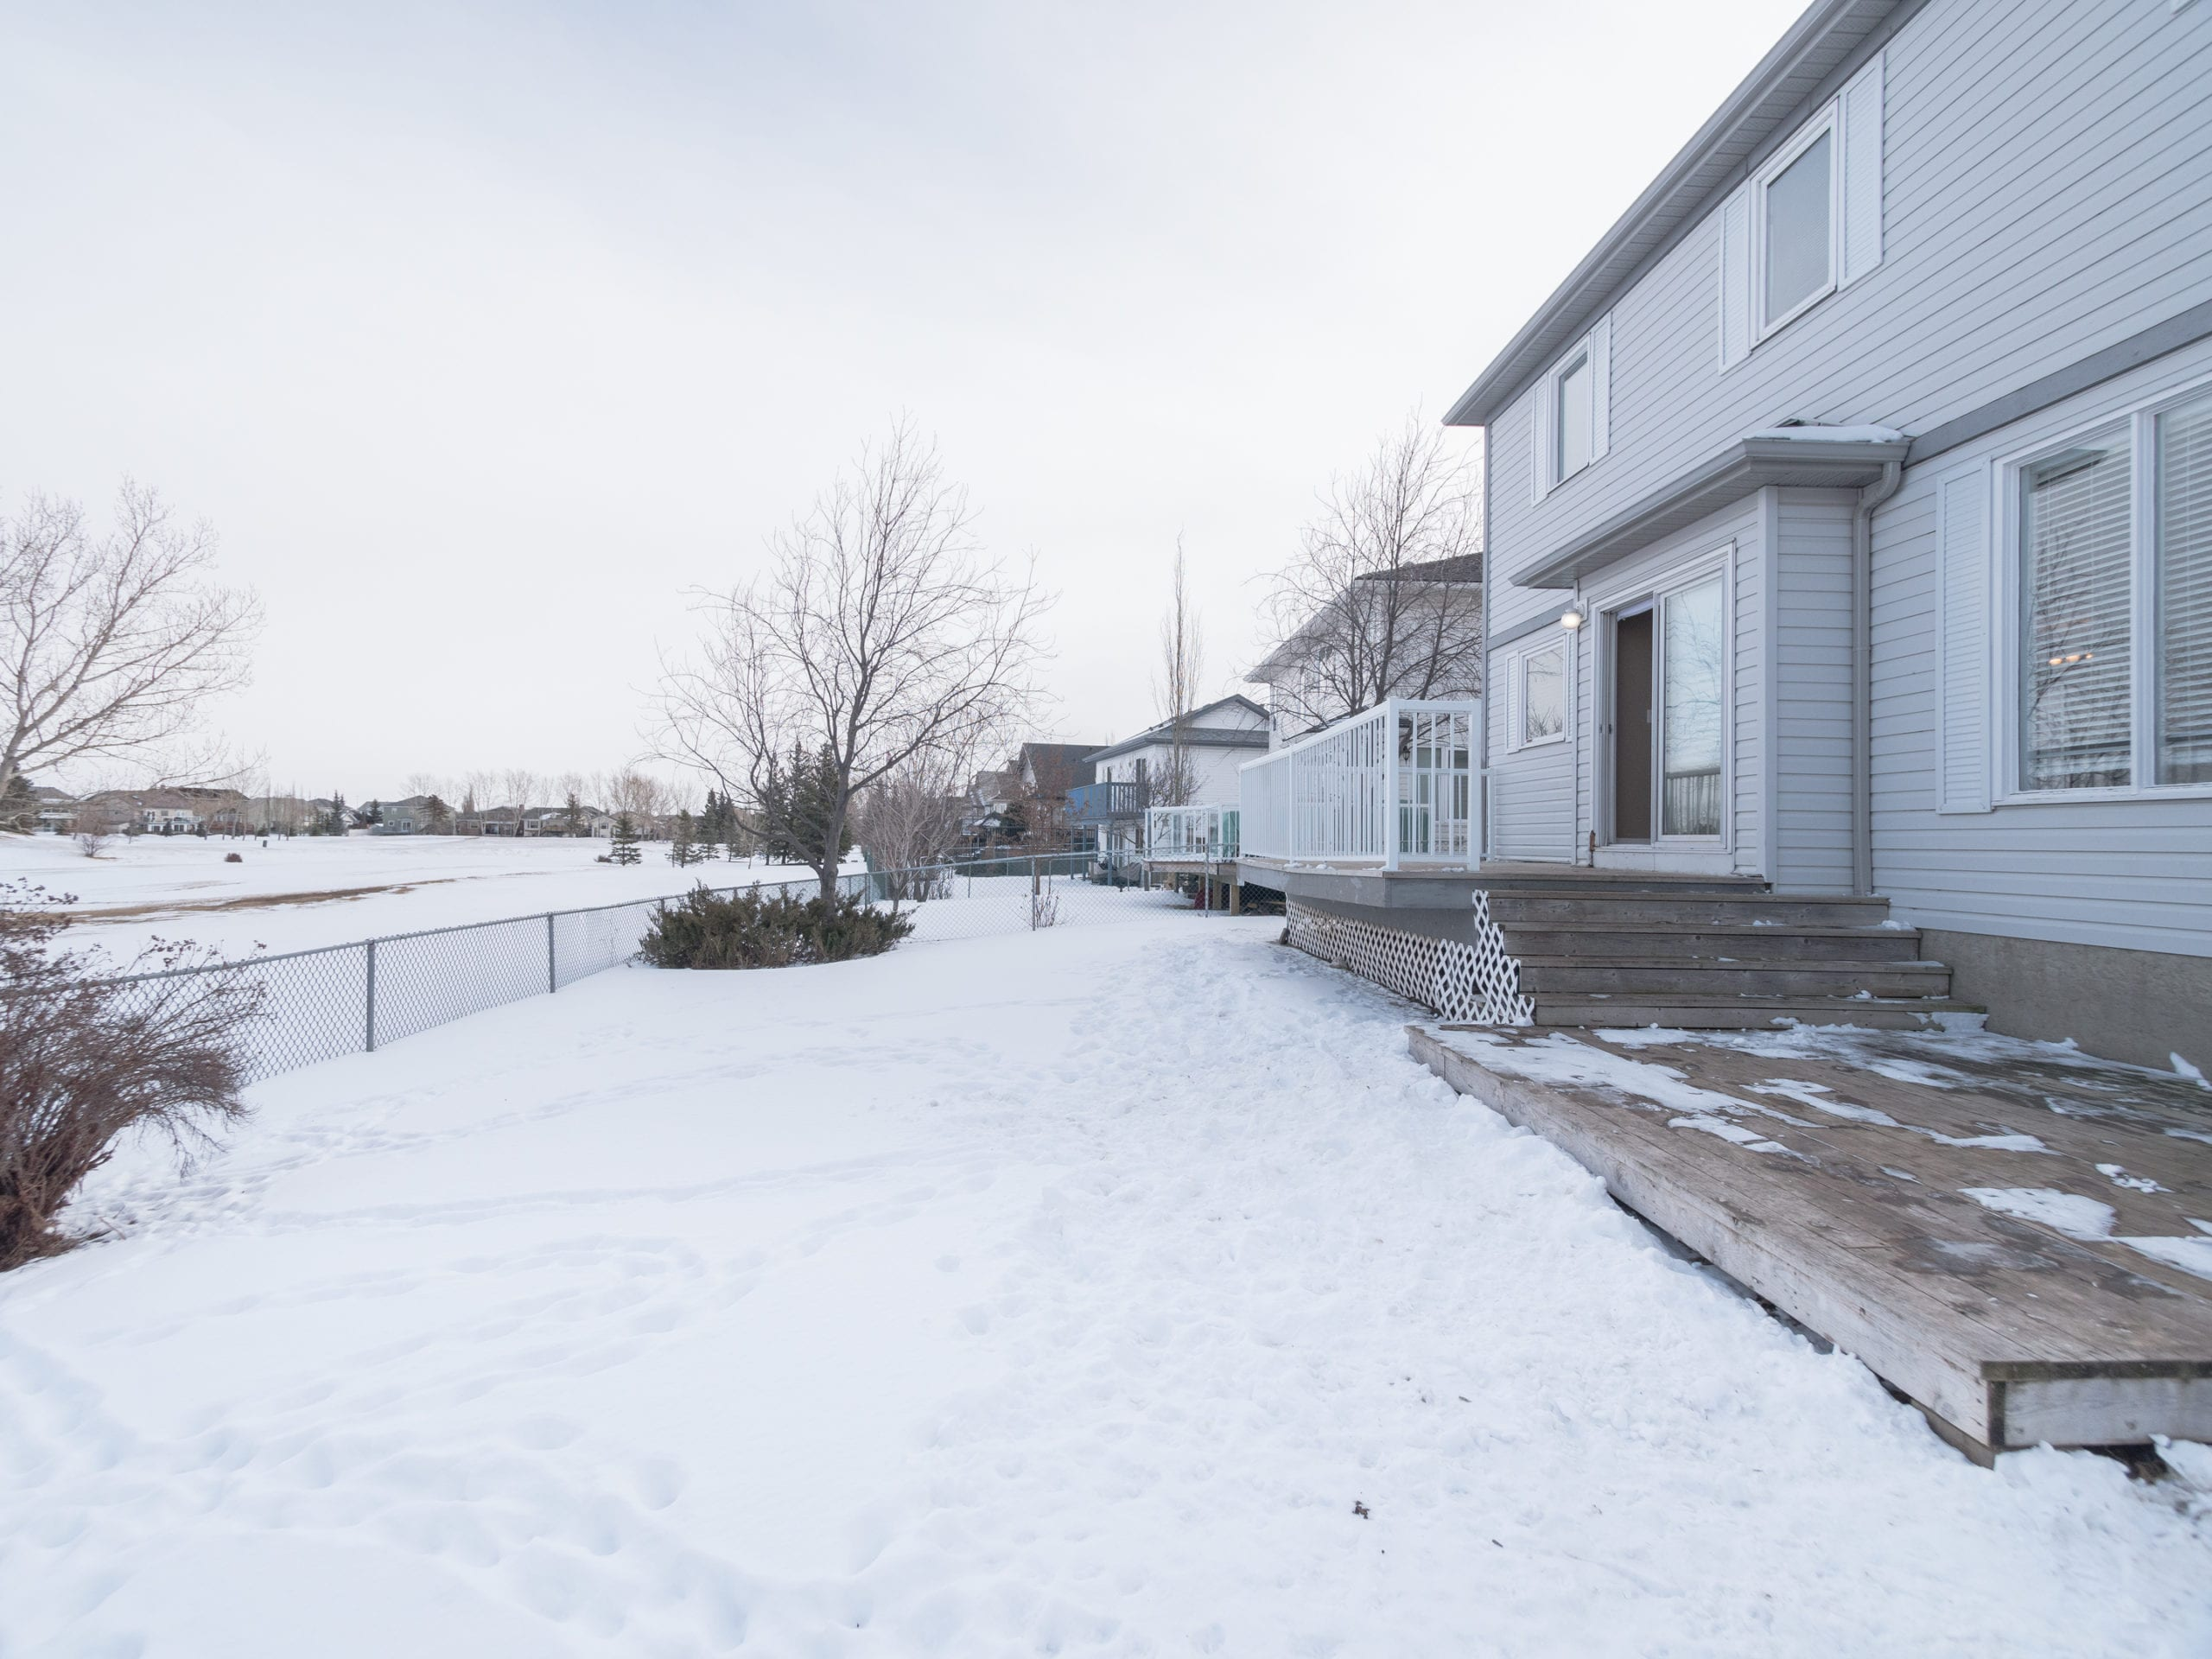 Hello Gorgeous - 143 Woodside Road NW, Airdrie AB. - Tara Molina Real Estate (43 of 54)